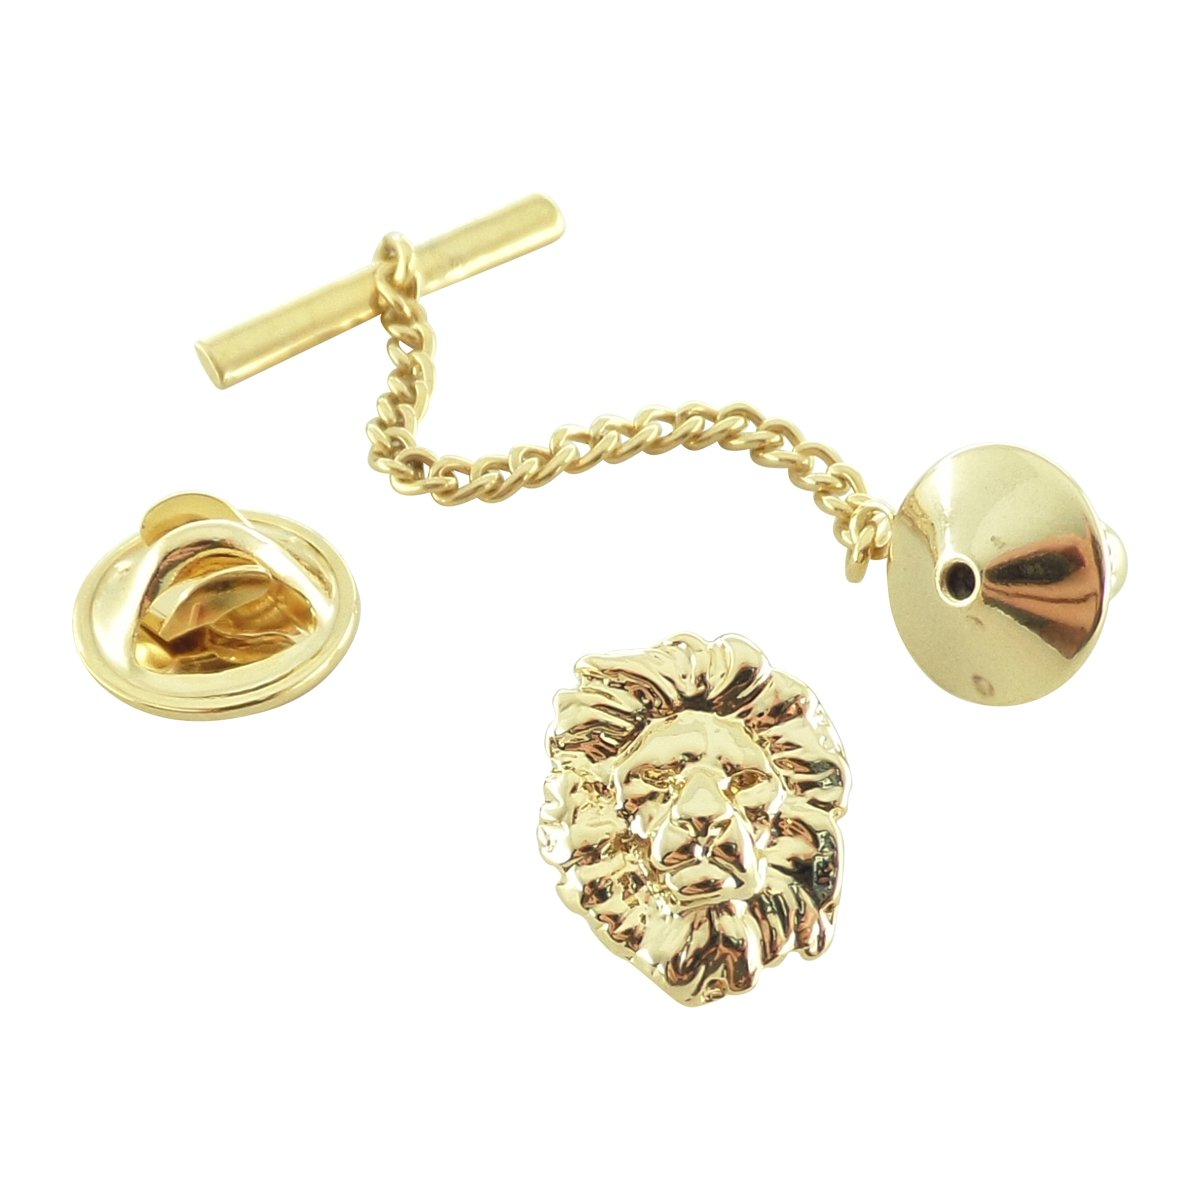 Creative Pewter Designs, Pewter Lion Head Tie Tack, Gold Plated, MG102TT